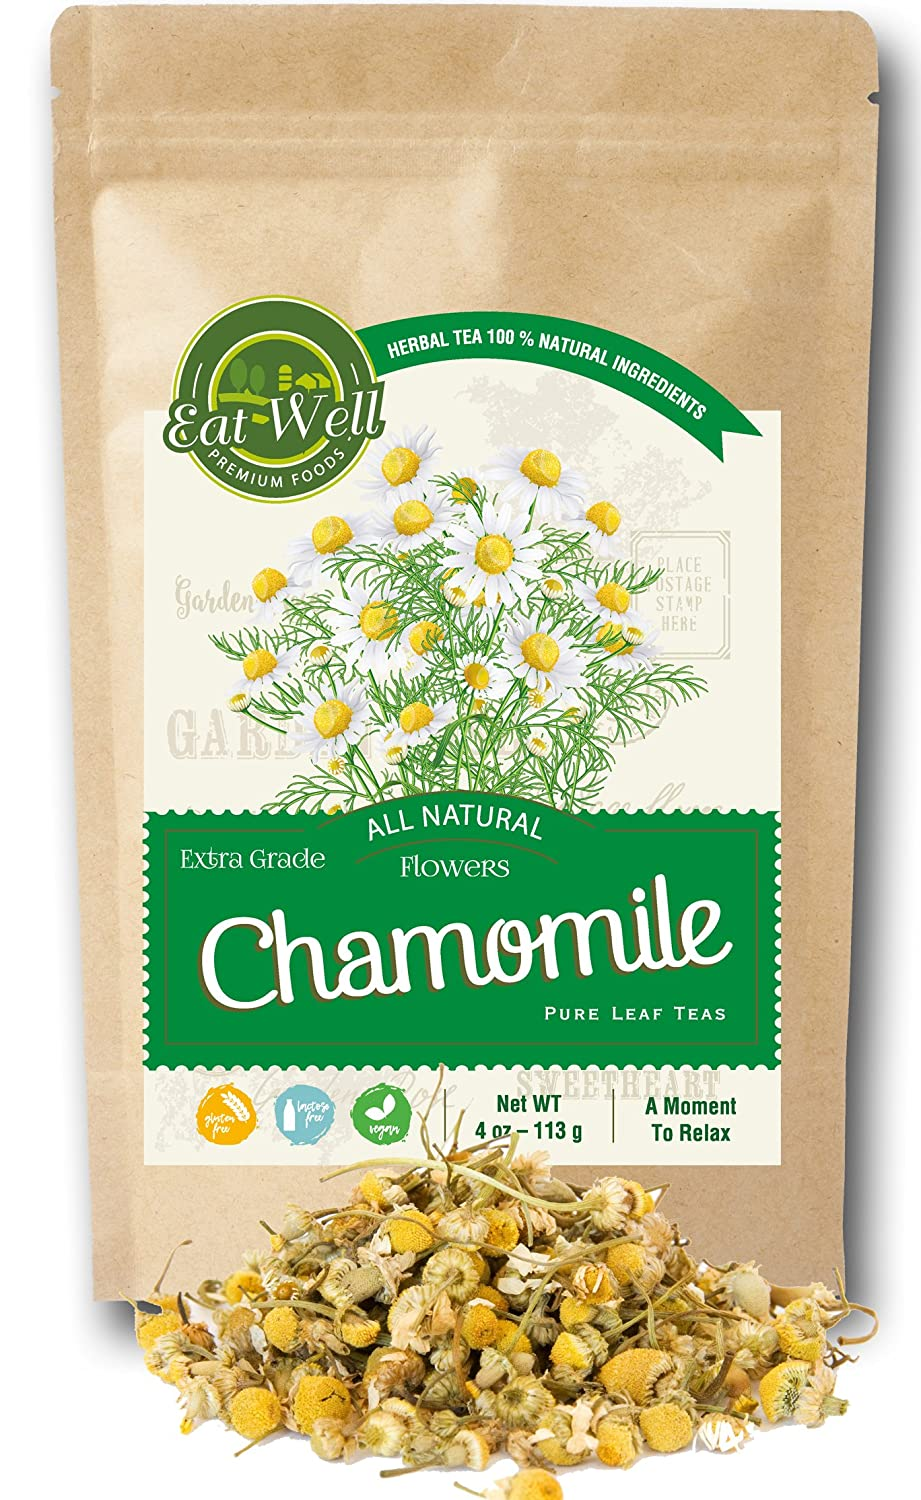 Eat Well Premium Foods - Chamomile Flowers Tea 4 oz Reseable Bag, Chamomile Tea Loose Leaf ,Dried Chamomile Herbal Tea , Relax, Sleep Well